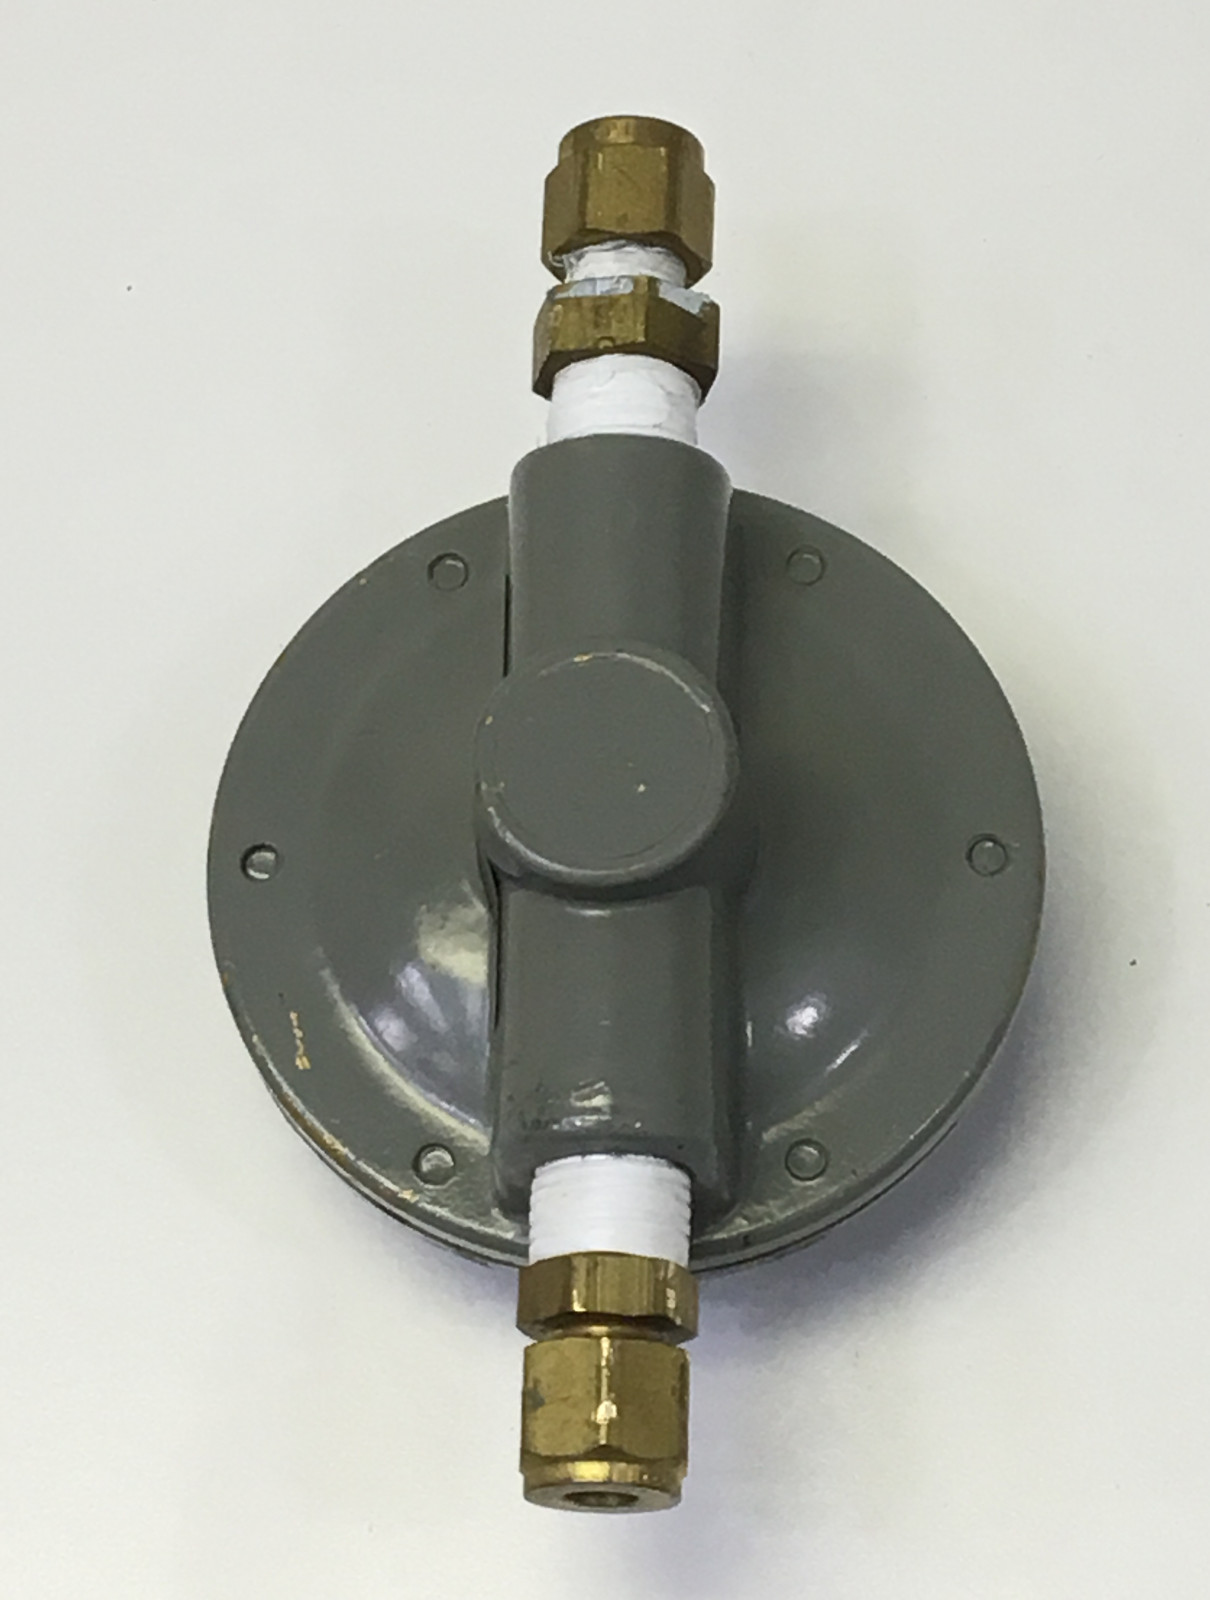 Conoflow, ITT GH21XTXM A88 Differential Pressure Regulator